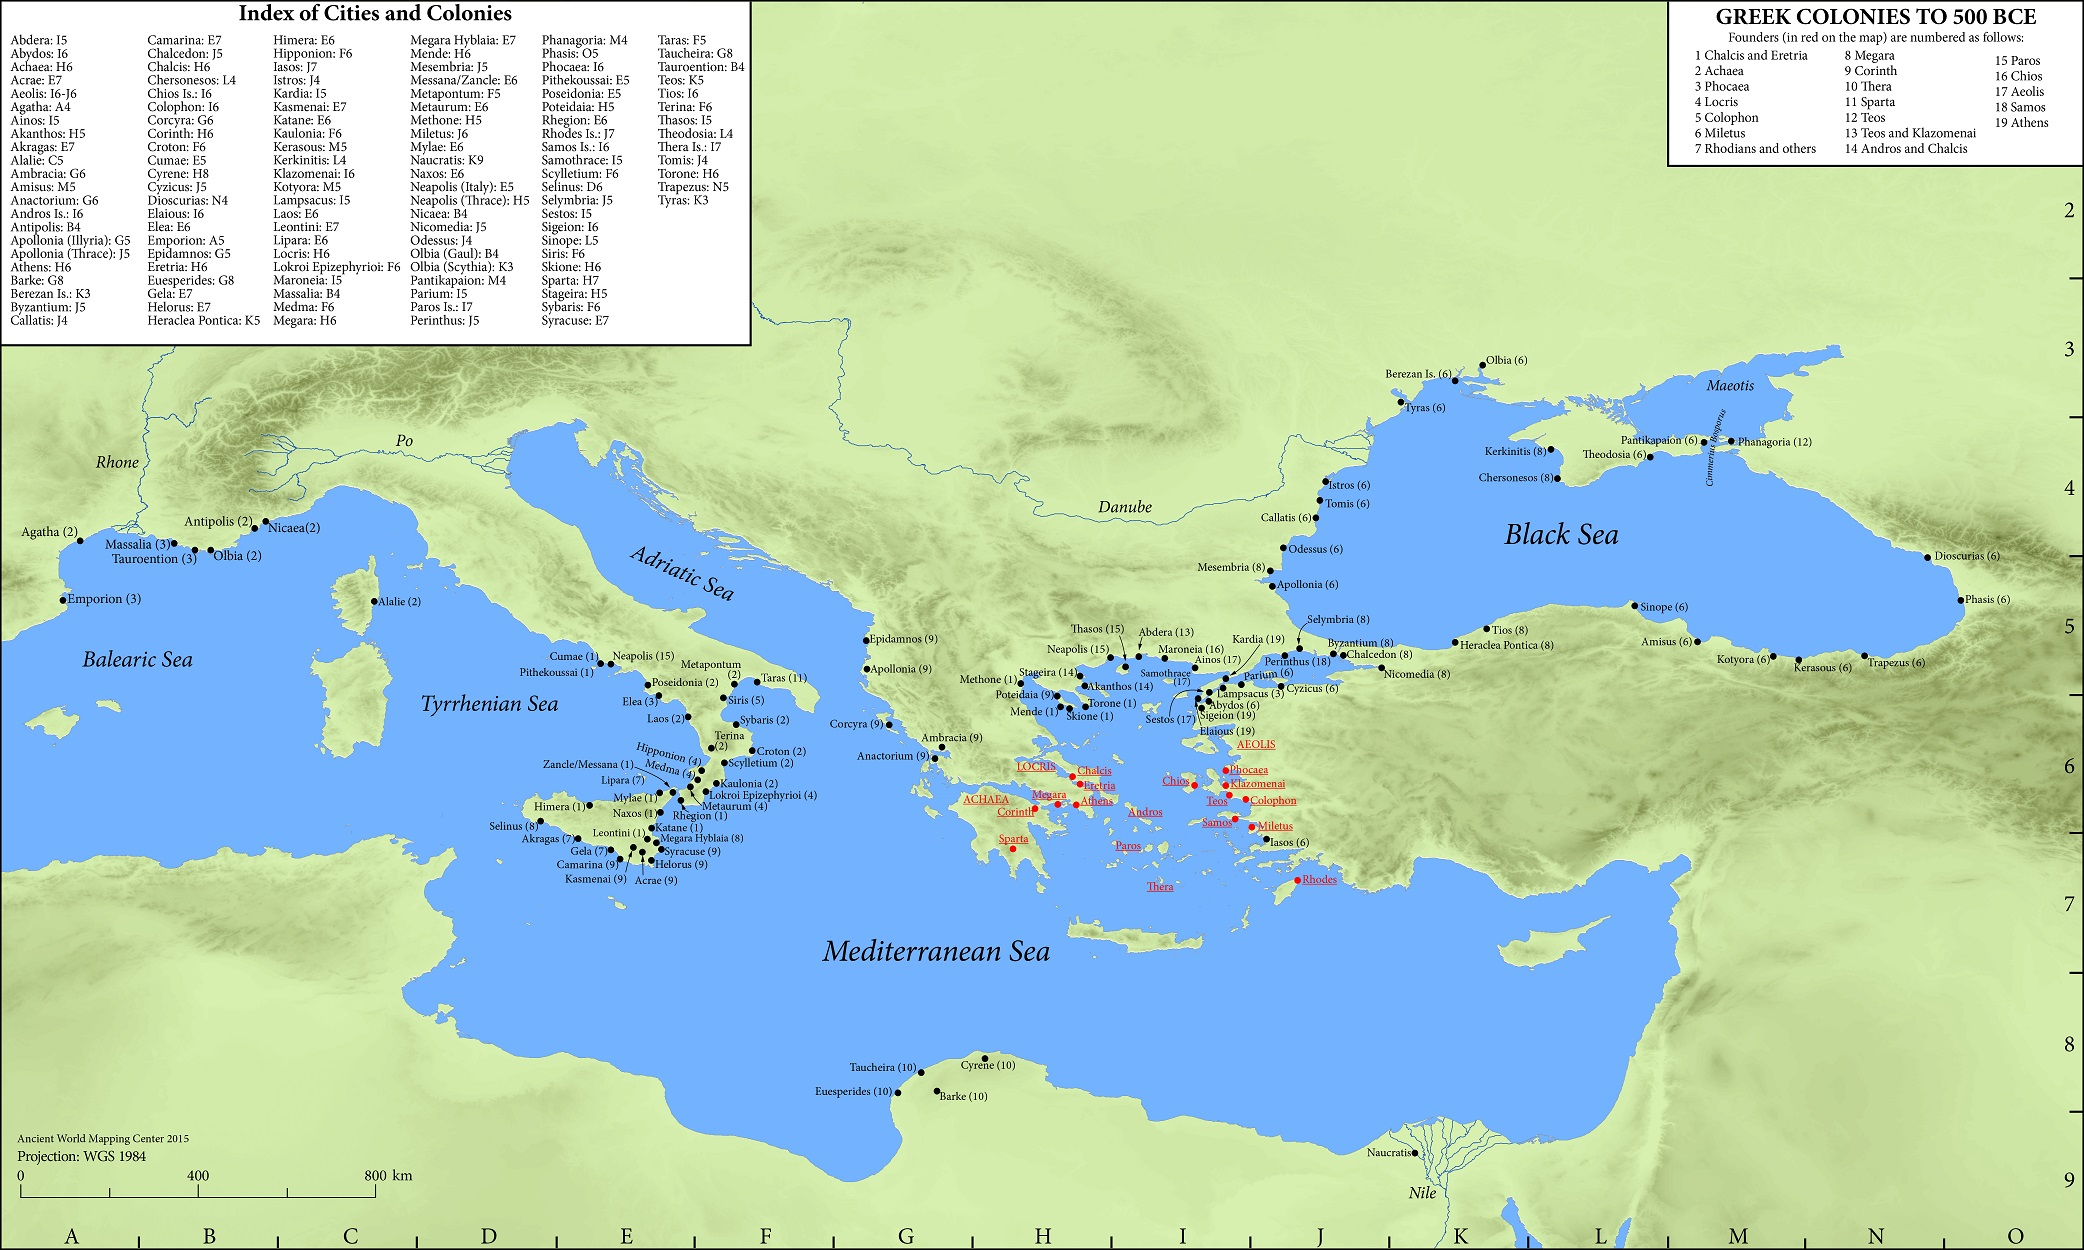 Maps of the ancient world oxford classical dictionary greek colonies to 500 bce gumiabroncs Images